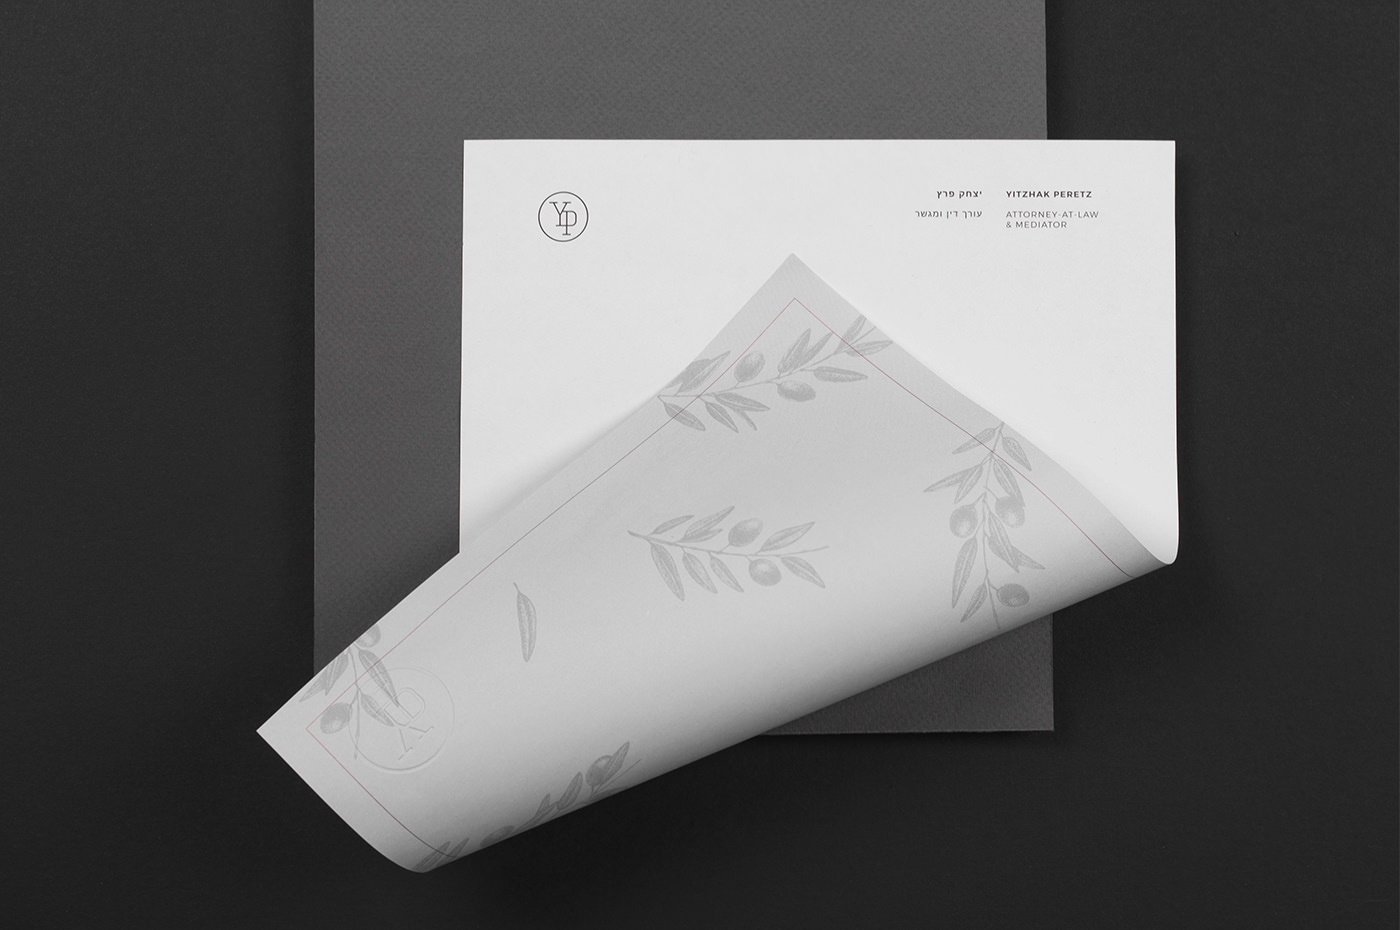 identity lawyer attorney law real-estate israel logo gold foil foil print luxury high-end minimal Marble stone wood